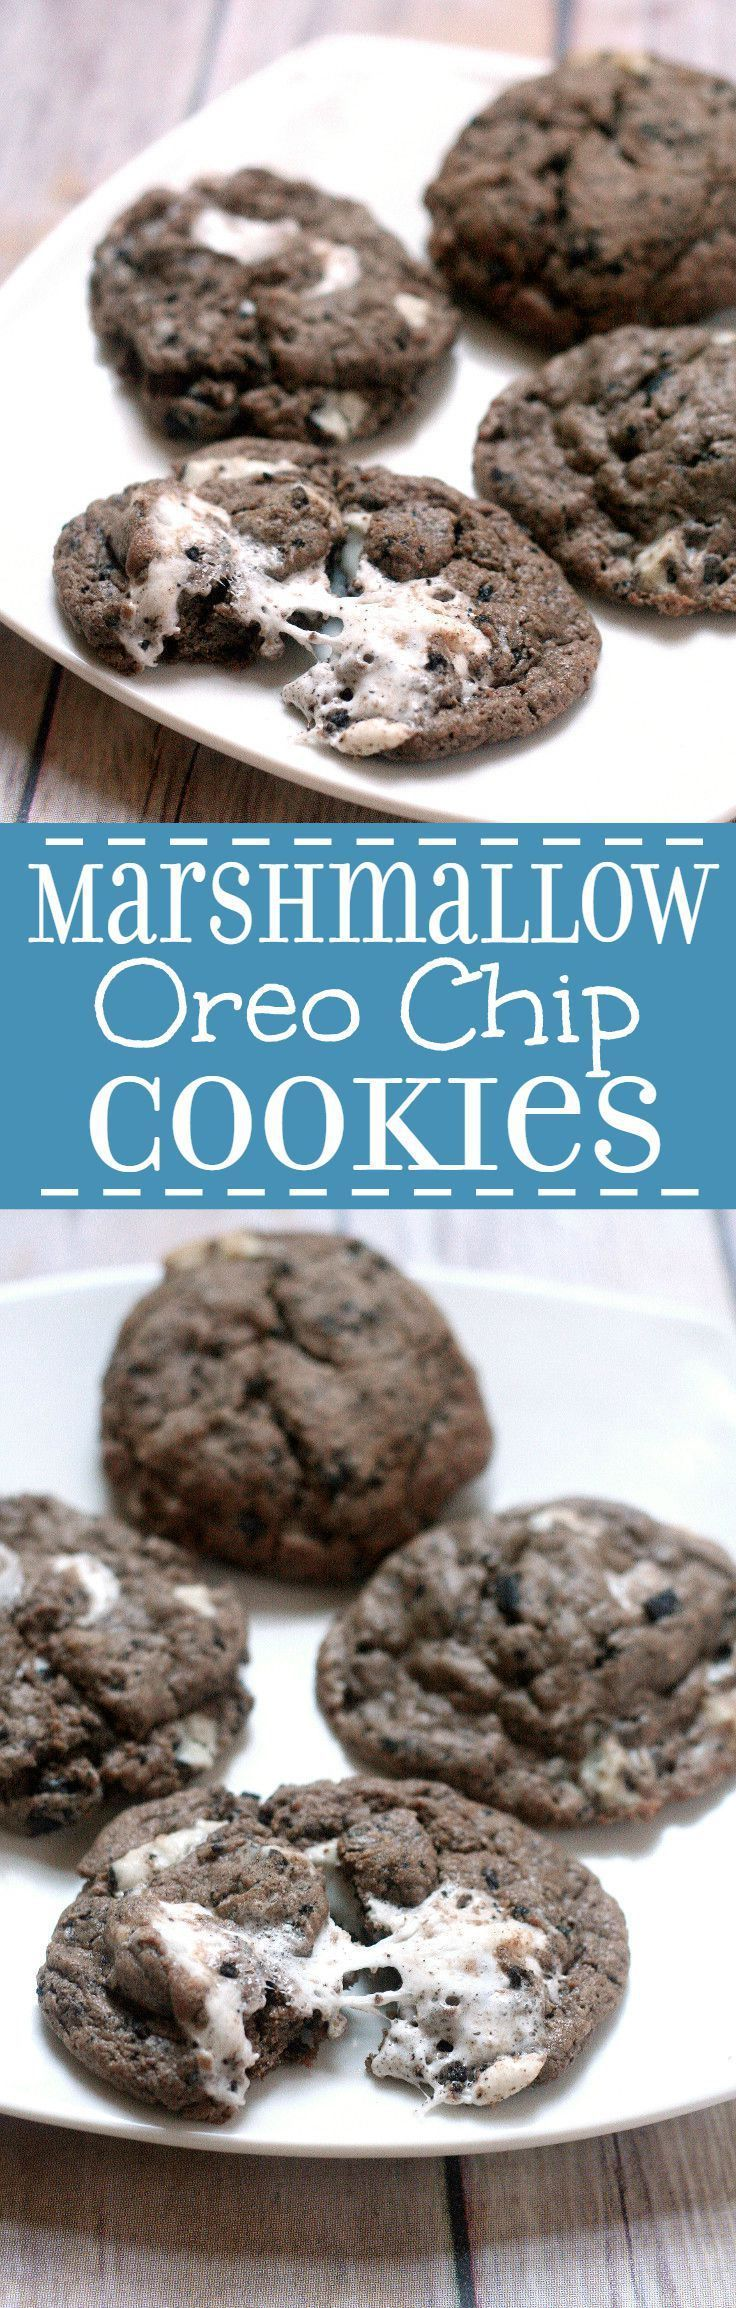 Marshmallow Oreo Chip Cookies is part of Cookies recipes christmas - Marshmallow Oreo Chip Cookies are a sort of everythingbutthekitchensink chocolate cookie recipe with gooey marshmallows, Oreos, and Cookies 'N Cream Bars